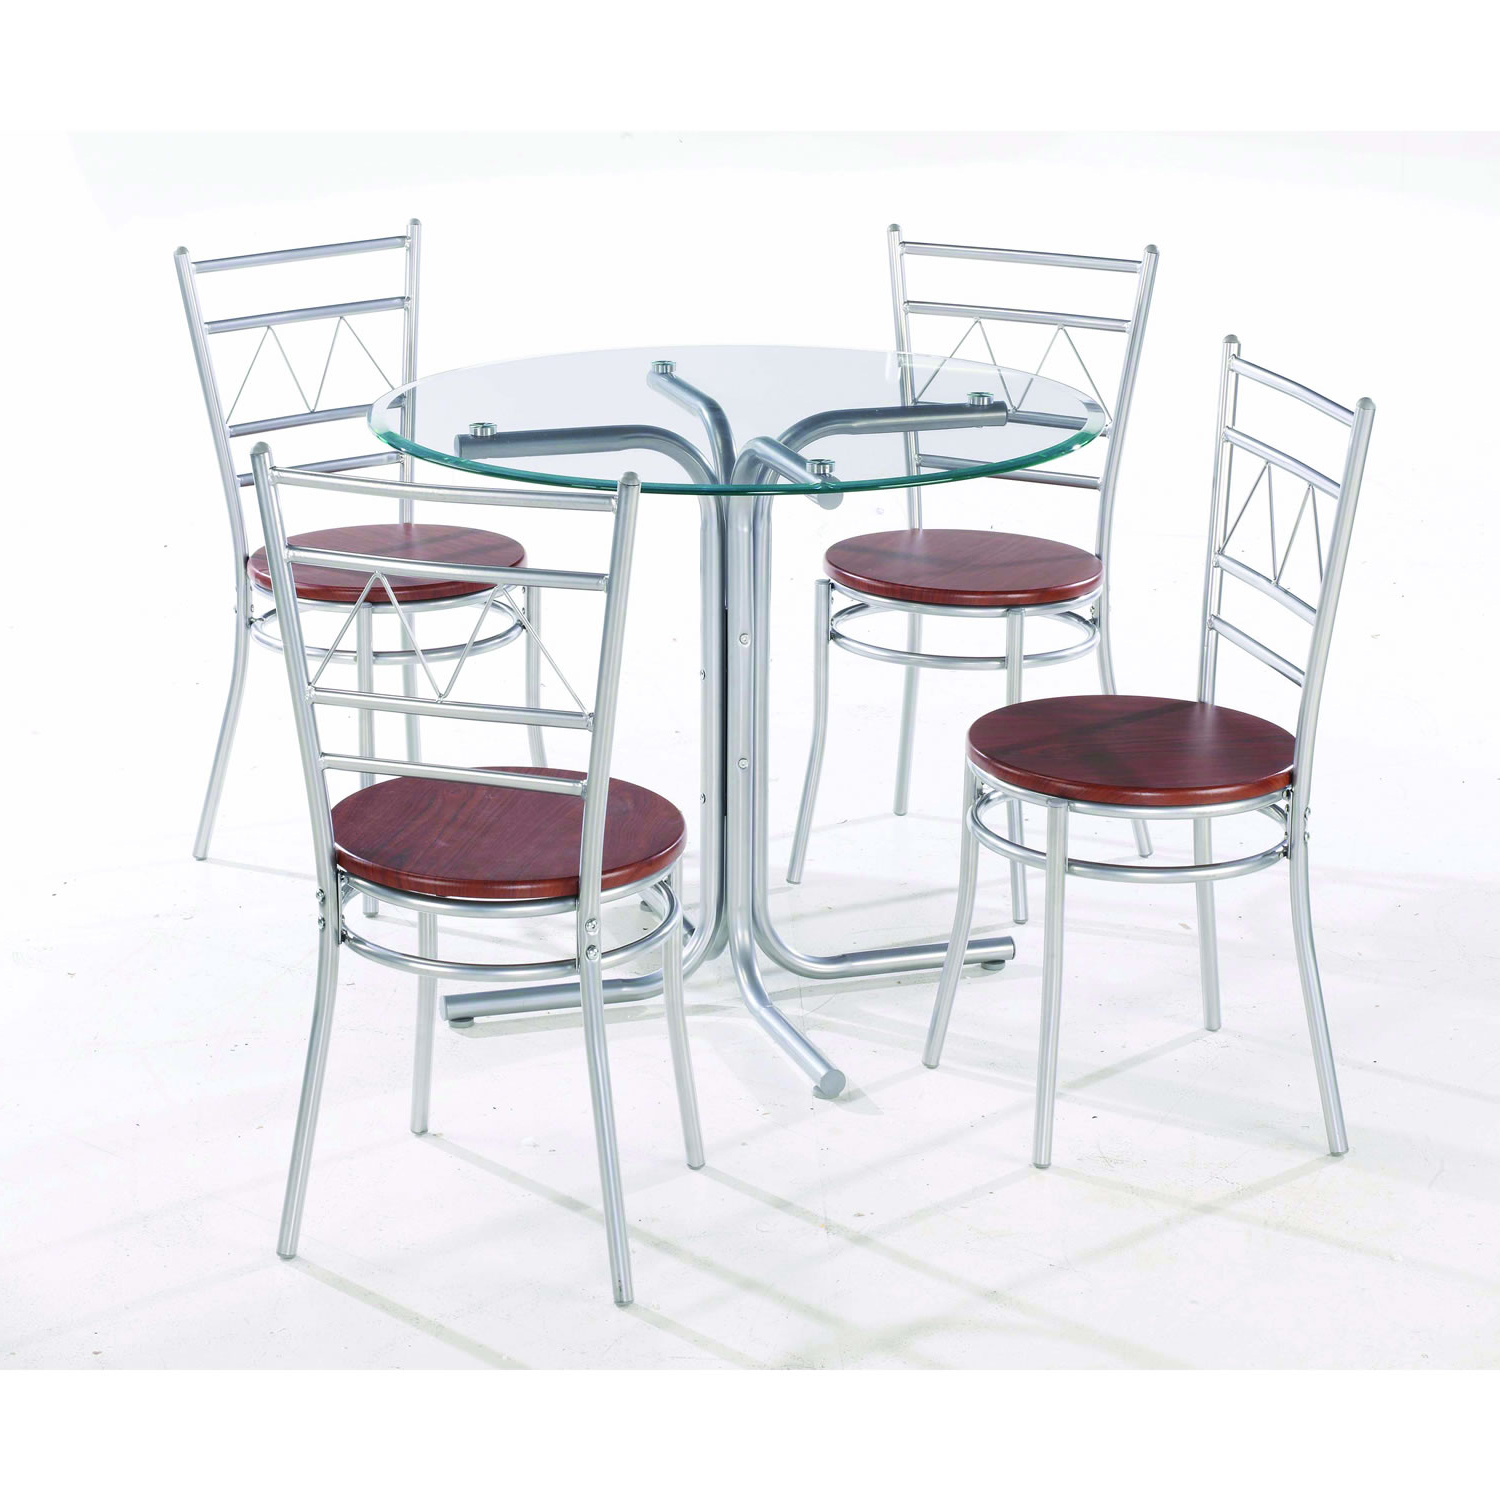 2018 Wonderful Round Glass Dining Table With Four Chrome Metal Throughout 4 Seater Round Wooden Dining Tables With Chrome Legs (View 5 of 30)